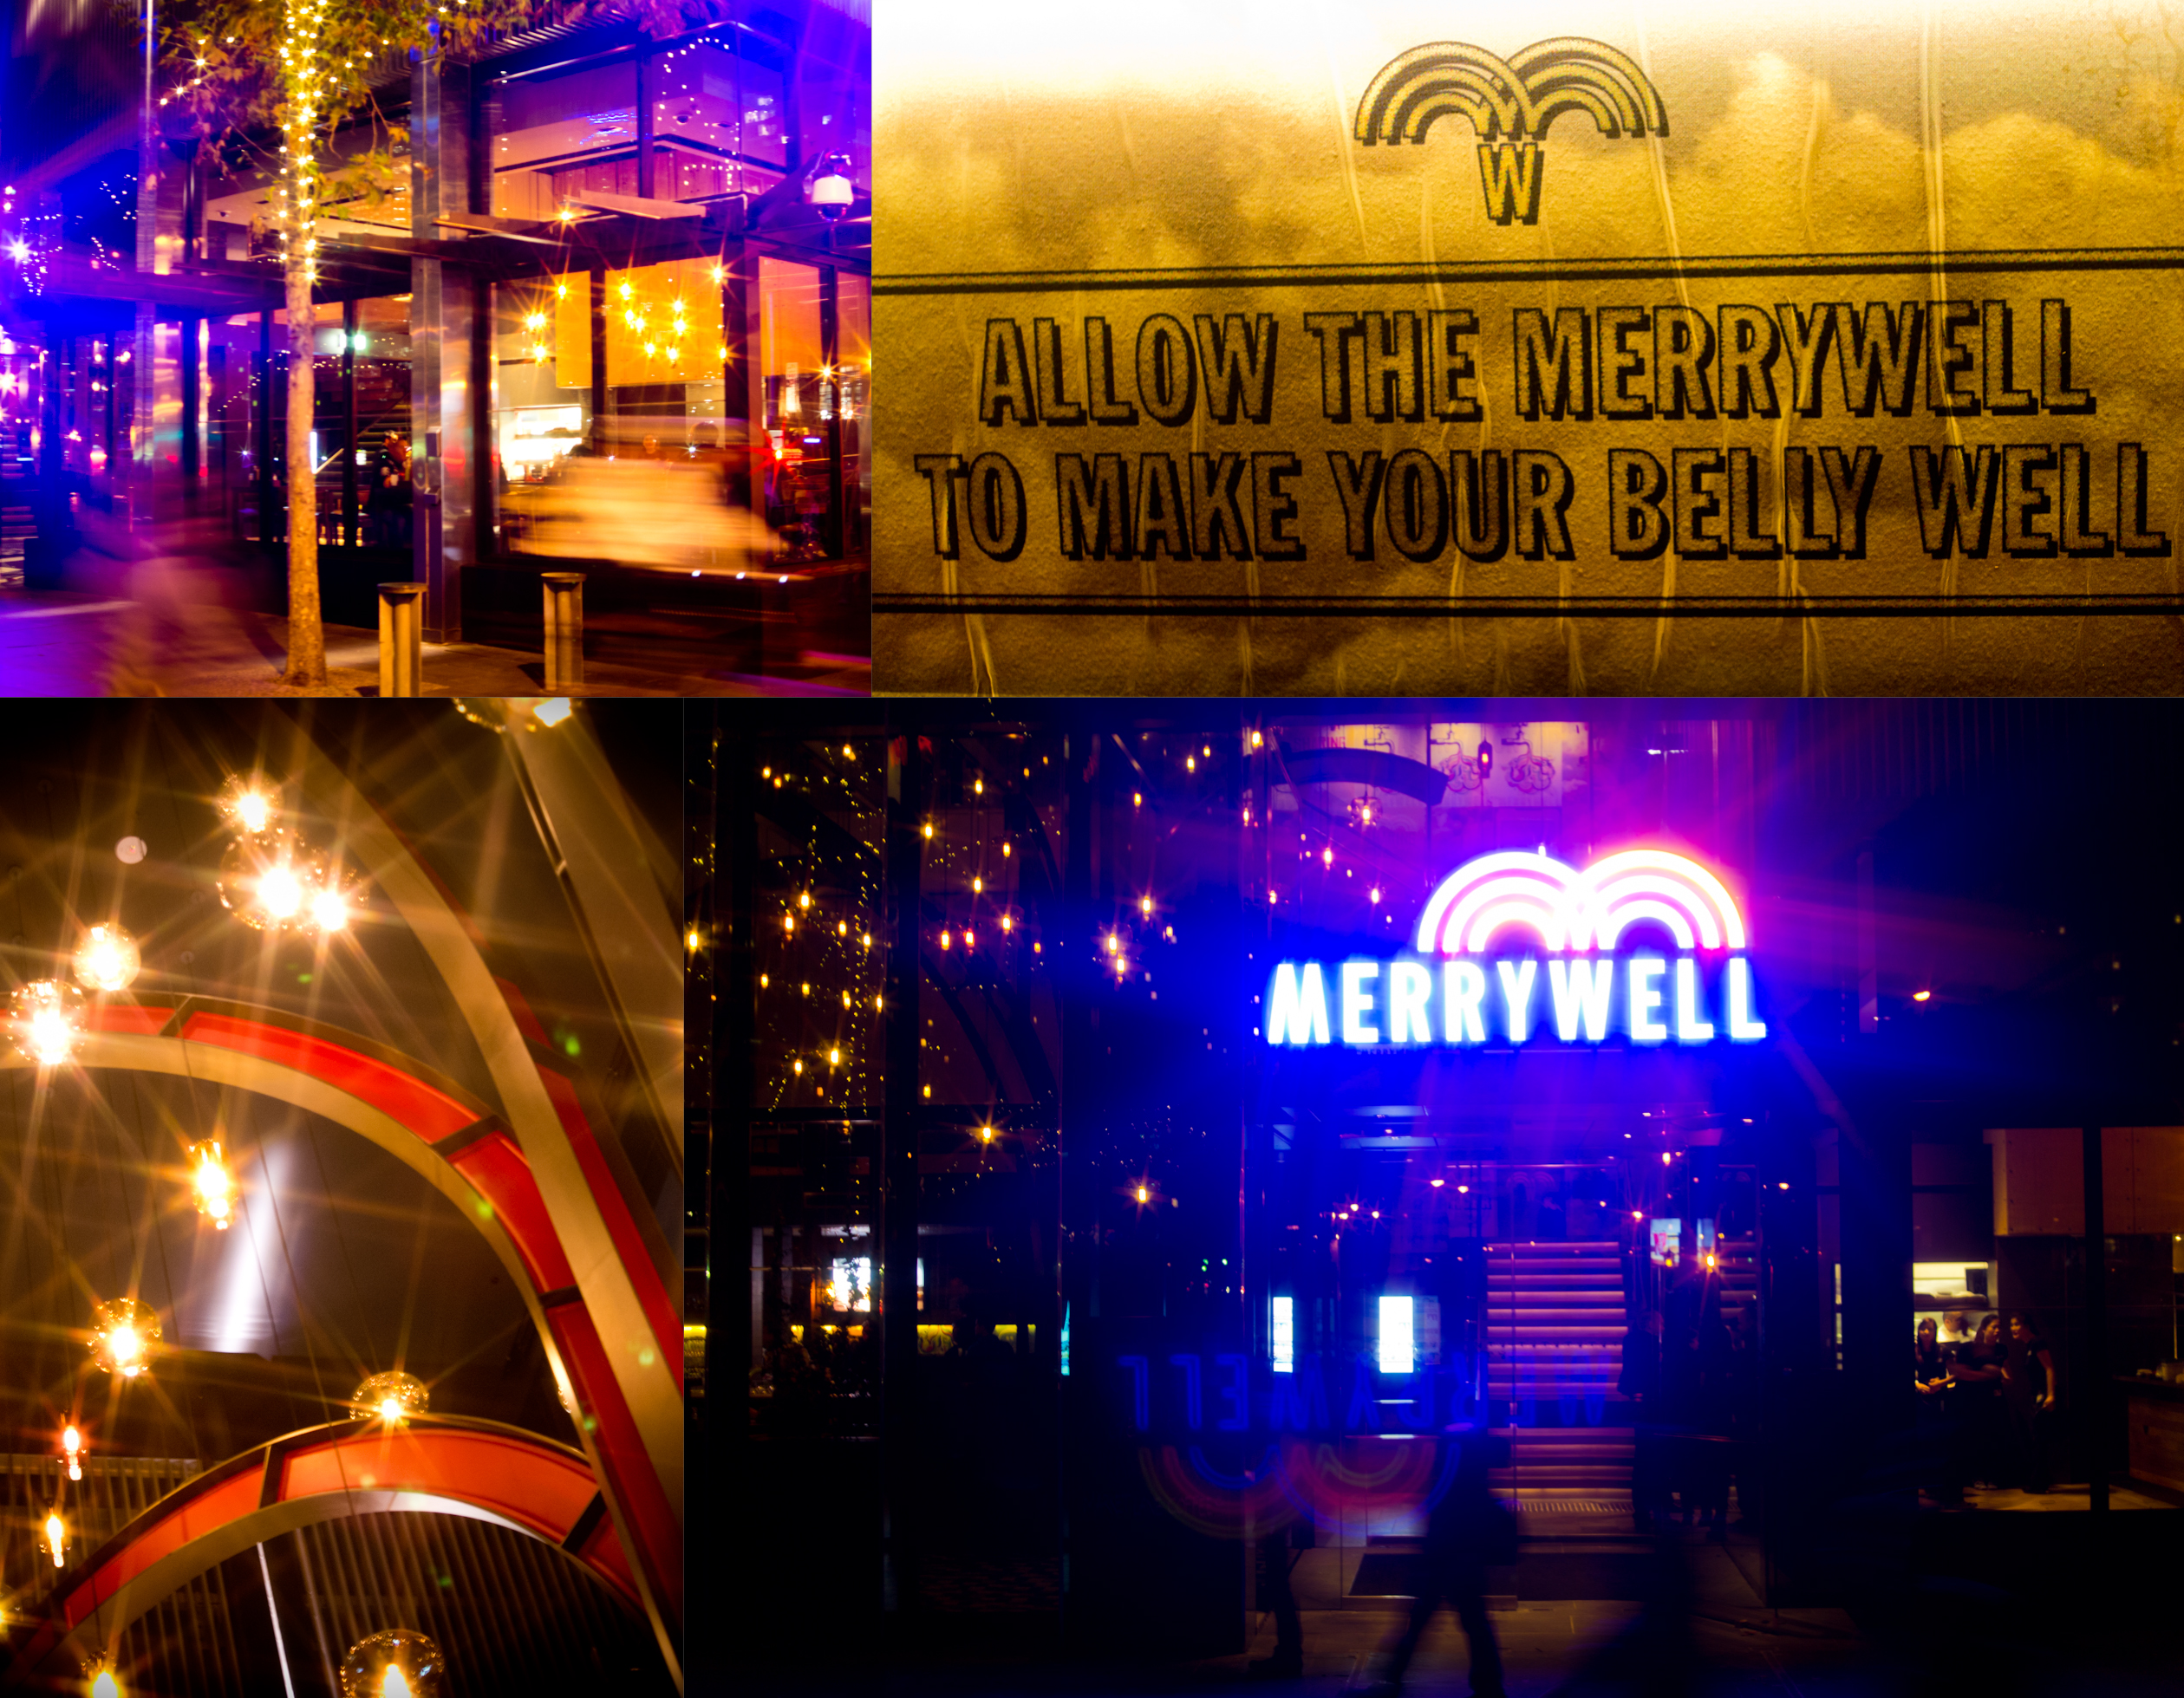 Merrywell Crown Casino Melbourne